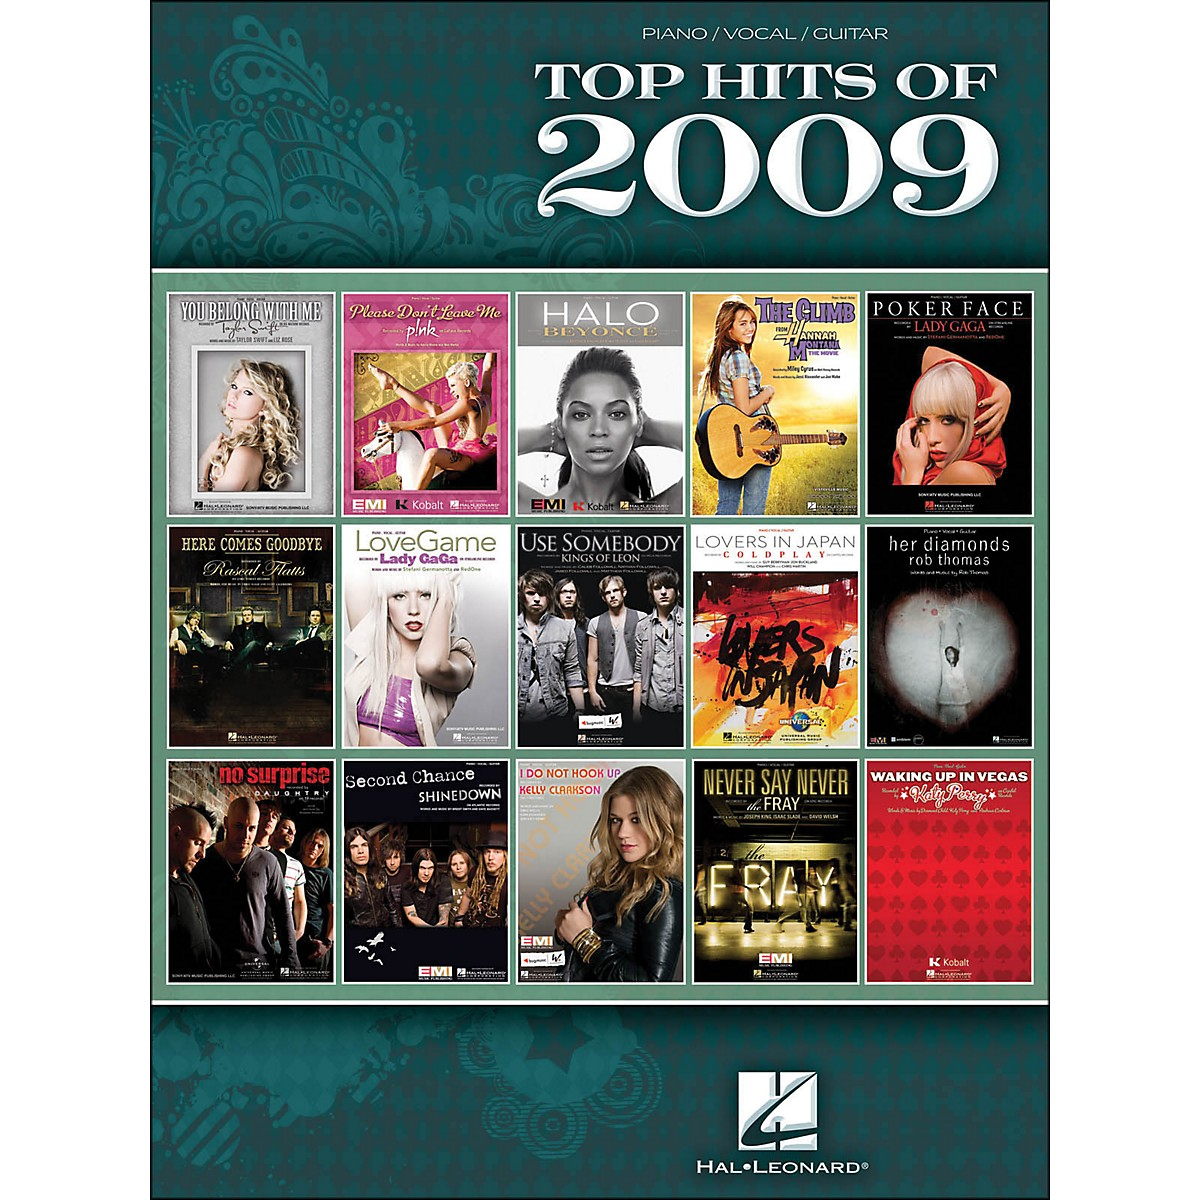 Hal Leonard Top Hits Of 2009 arranged for piano, vocal, and guitar (P/V/G)